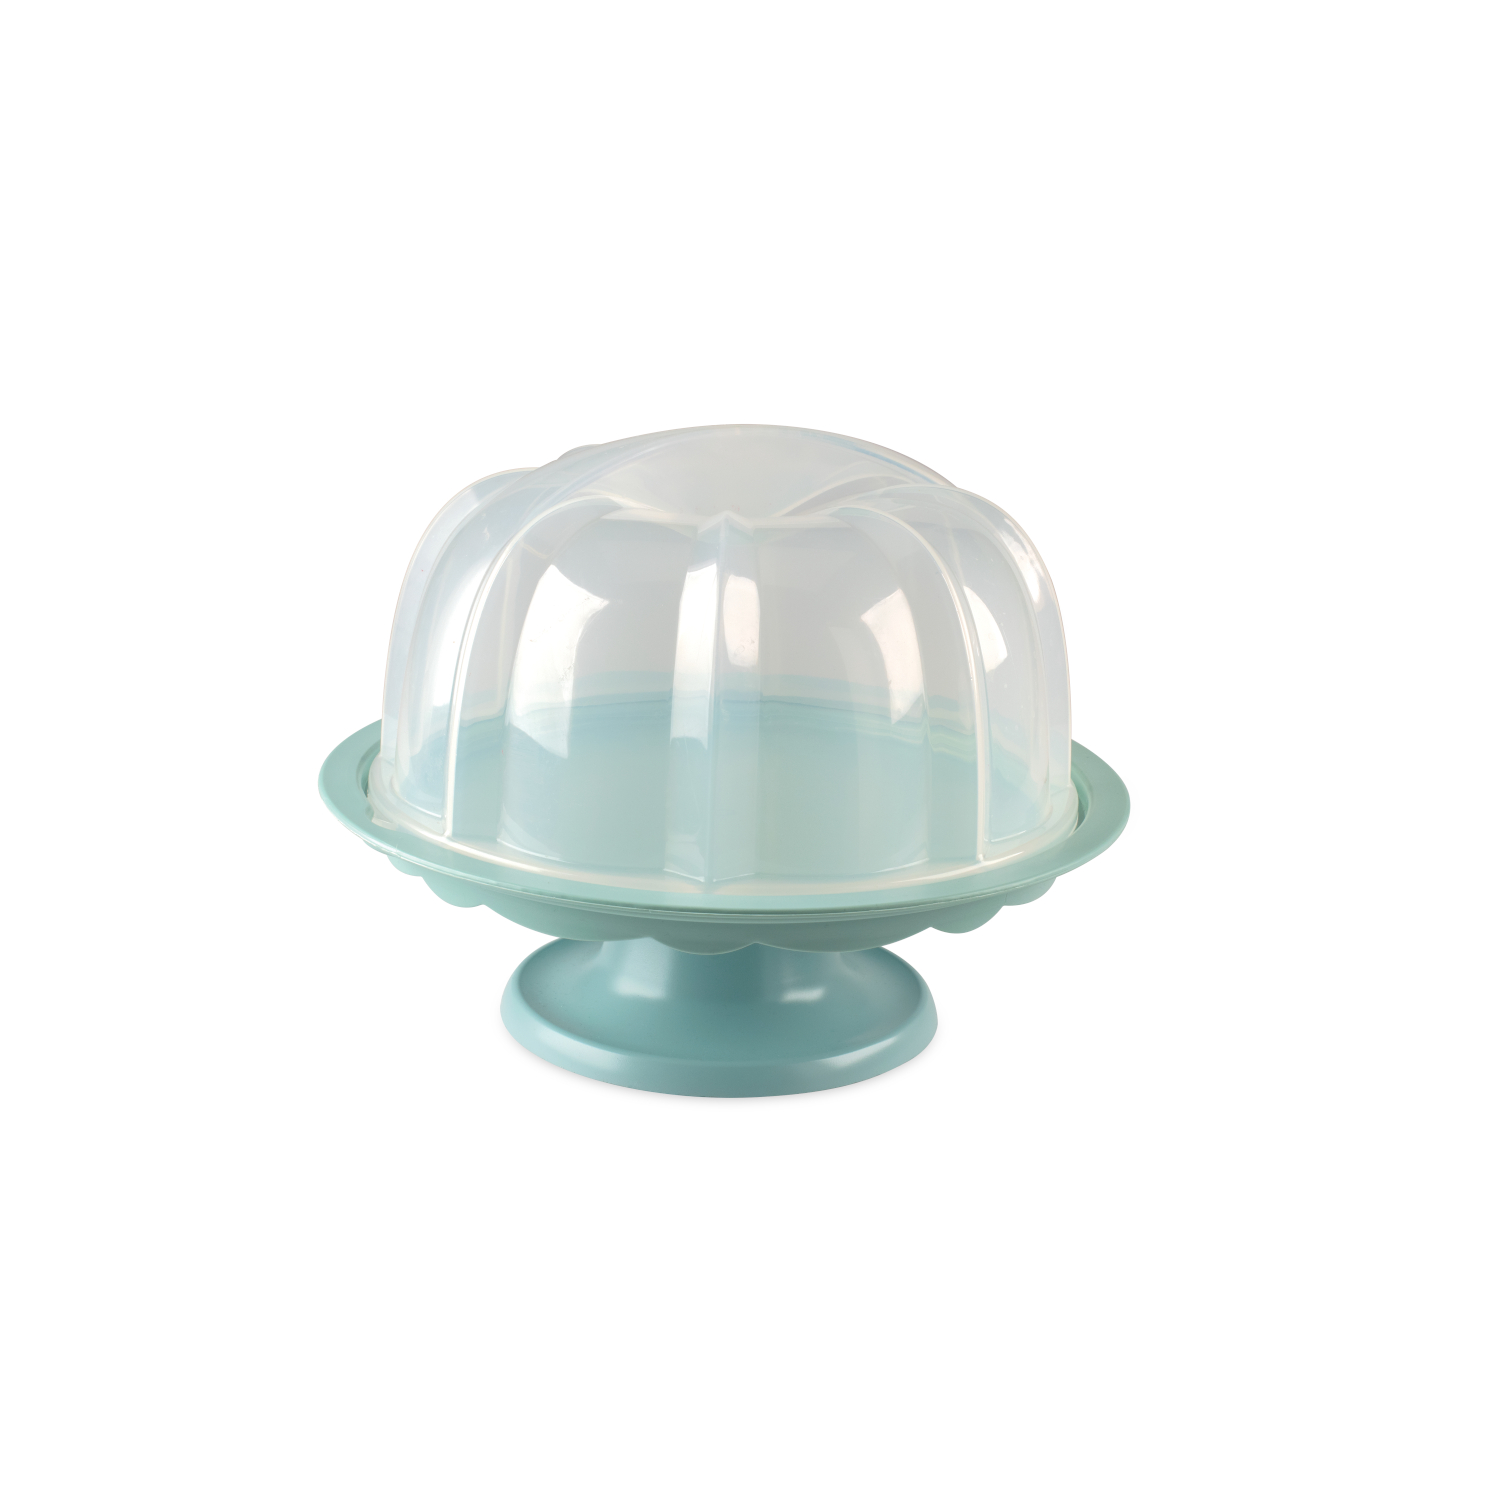 Nordic Ware Sea Glass 12.75 Inch Bundt Cake Stand with Dome Lid